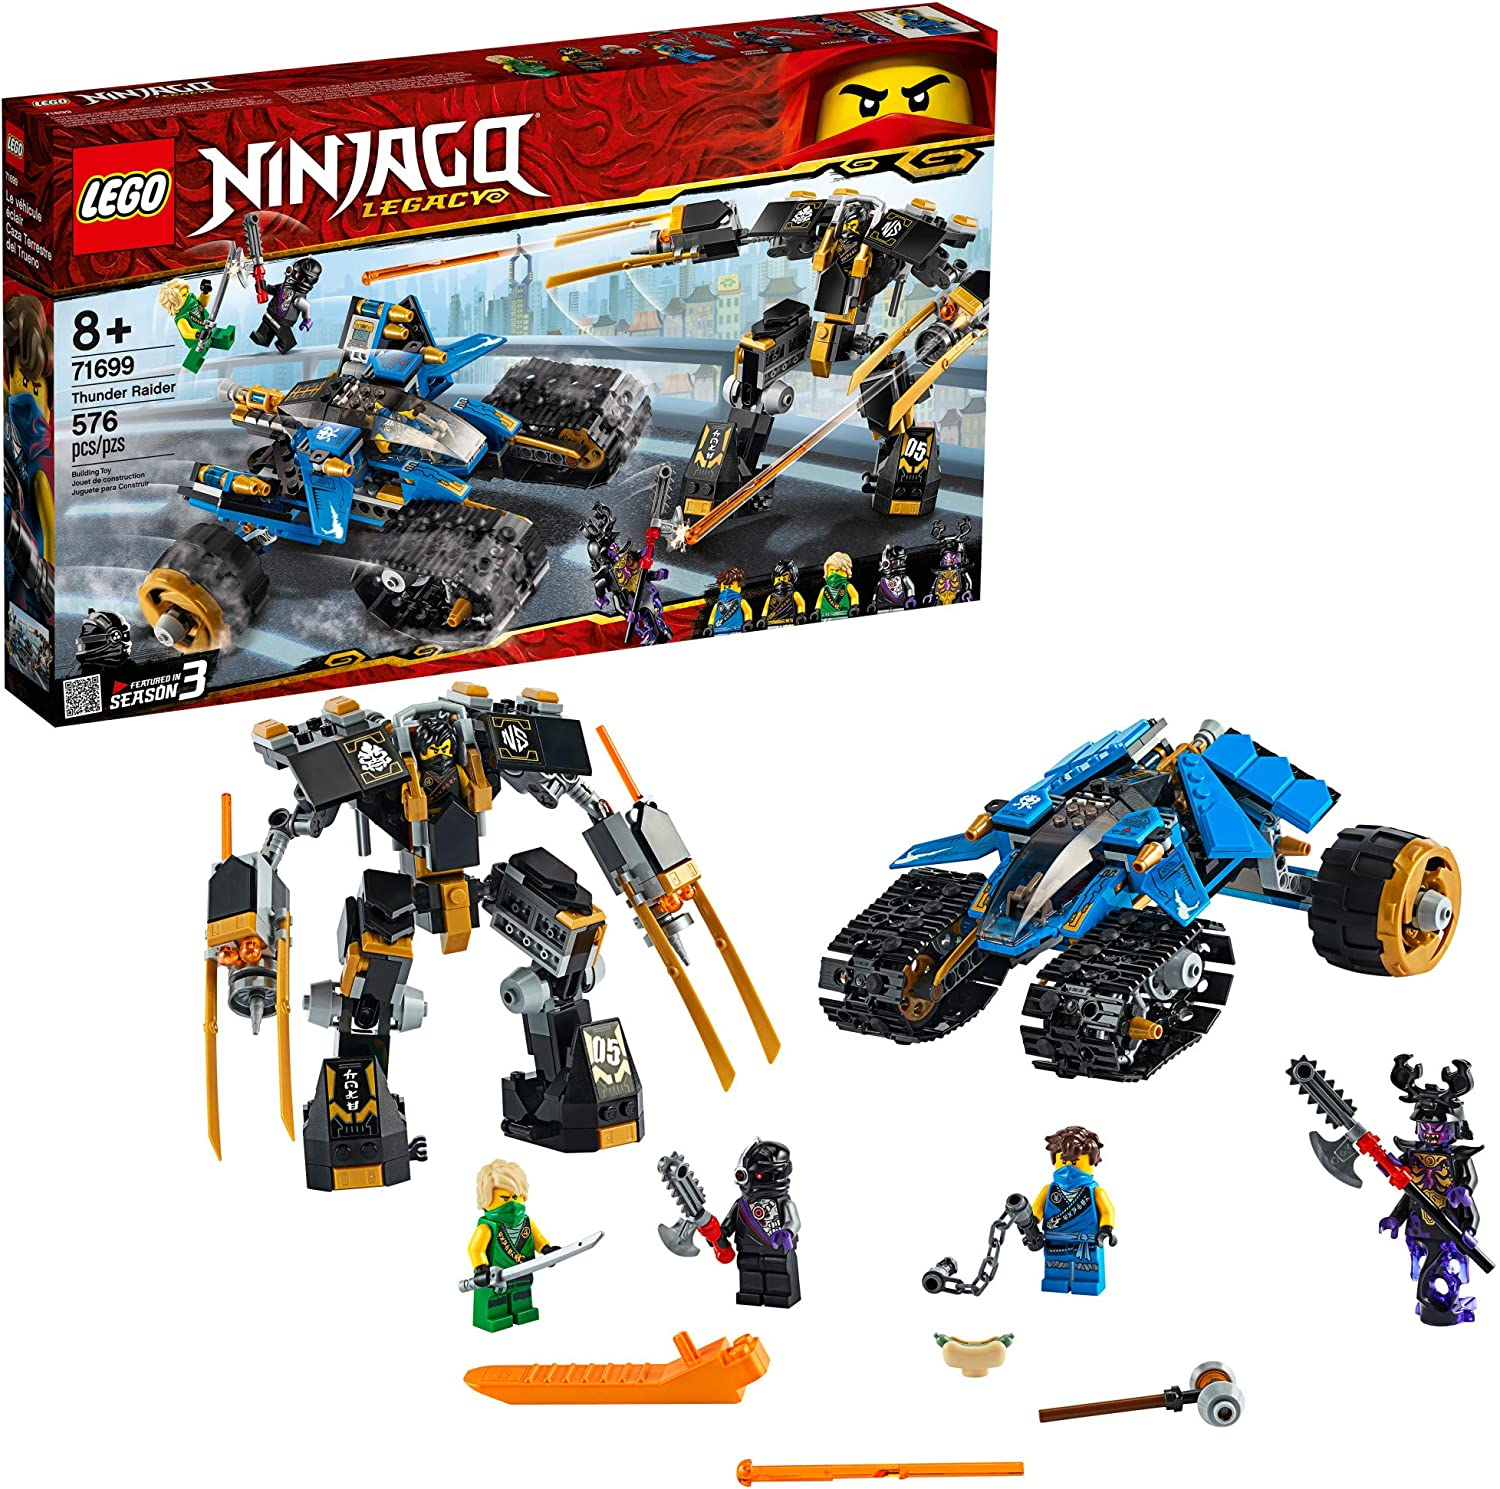 LEGO NINJAGO Legacy Thunder Raider 71699 Ninja Mech Adventure Toy Building Kit, New 2020 (576 Pieces)